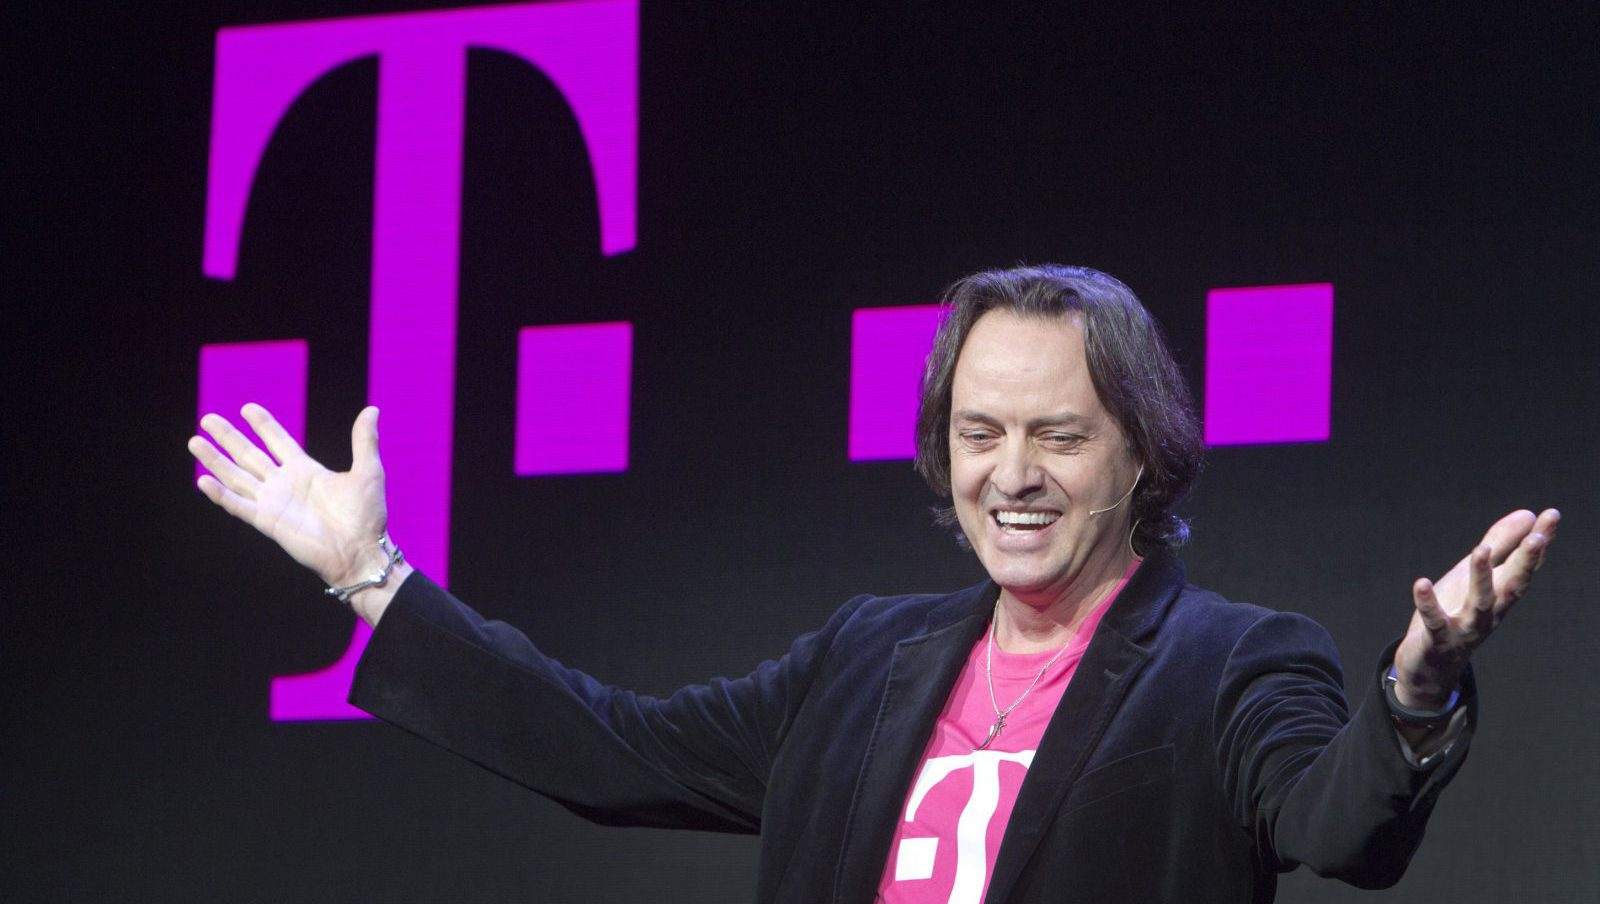 T-Mobile CEO John Legere speaks during a news conference at the 2014 International Consumer Electronics Show (CES) in Las Vegas, Nevada, January 8, 2014. T-Mobile announced they will pay Early Termination Fees (ETF) for families who transfer service from AT&T, Verizon, and Sprint. REUTERS/Steve Marcus (UNITED STATES - Tags: BUSINESS SCIENCE TECHNOLOGY) - RTX176R7